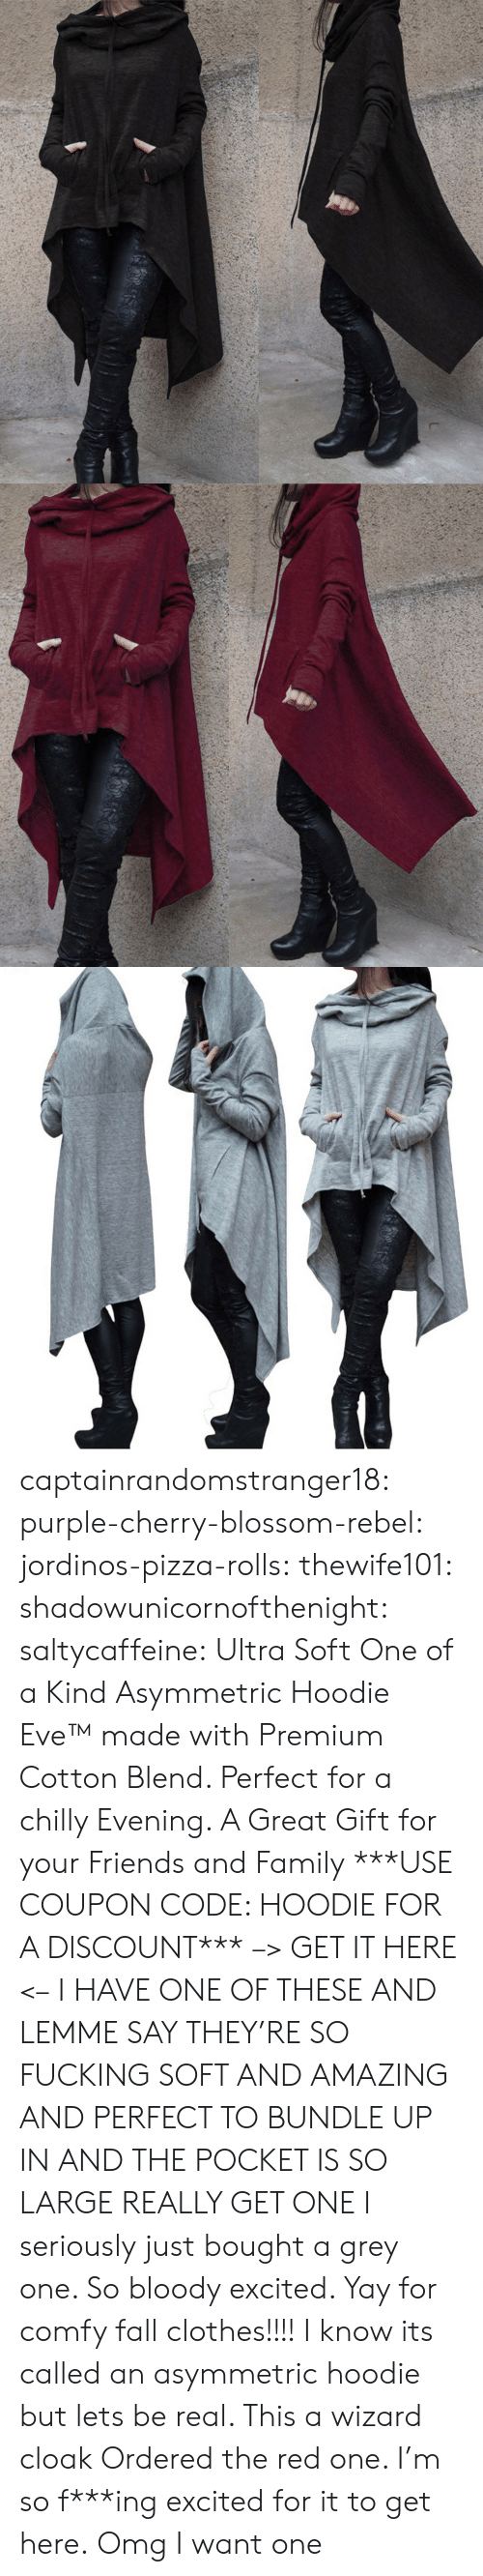 Clothes, Fall, and Family: captainrandomstranger18:  purple-cherry-blossom-rebel: jordinos-pizza-rolls:  thewife101:  shadowunicornofthenight:  saltycaffeine:  Ultra Soft One of a Kind Asymmetric Hoodie Eve™made with Premium Cotton Blend. Perfect for a chilly Evening. A Great Gift for your Friends and Family ***USE COUPON CODE: HOODIE FOR A DISCOUNT*** –> GET IT HERE <–   I HAVE ONE OF THESE AND LEMME SAY THEY'RE SO FUCKING SOFT AND AMAZING AND PERFECT TO BUNDLE UP IN AND THE POCKET IS SO LARGE REALLY GET ONE   I seriously just bought a grey one. So bloody excited. Yay for comfy fall clothes!!!!    I know its called an asymmetric hoodie but lets be real. This a wizard cloak   Ordered the red one. I'm so f***ing excited for it to get here.  Omg I want one